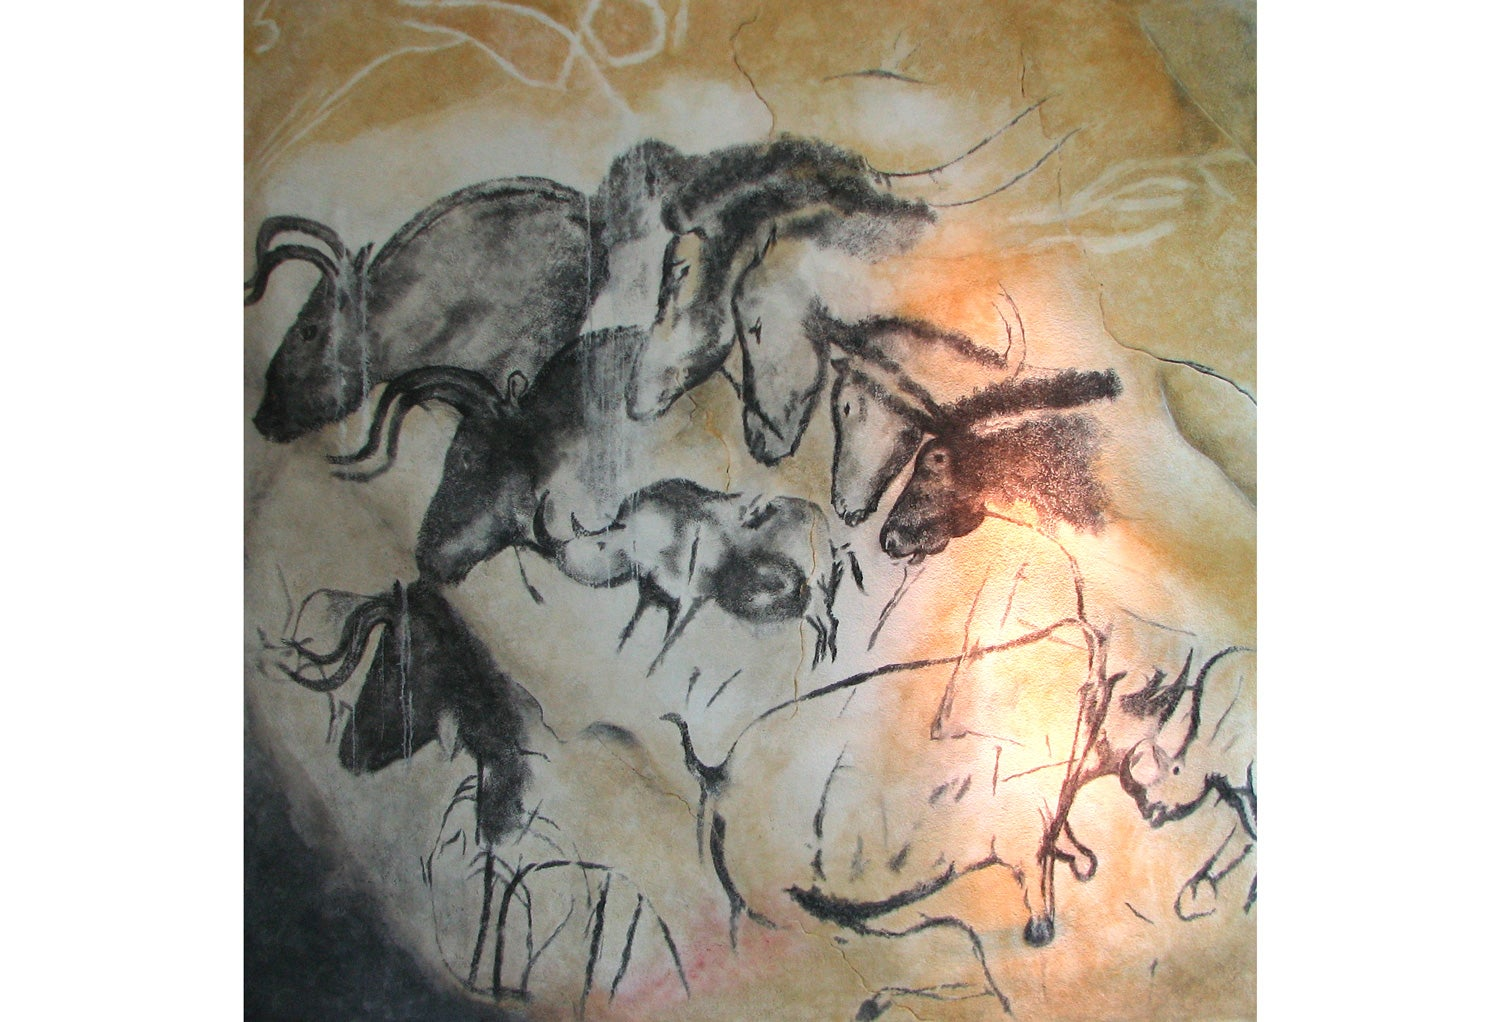 Chauvet Cave, replica painting, wild animals, France, Paleolithic